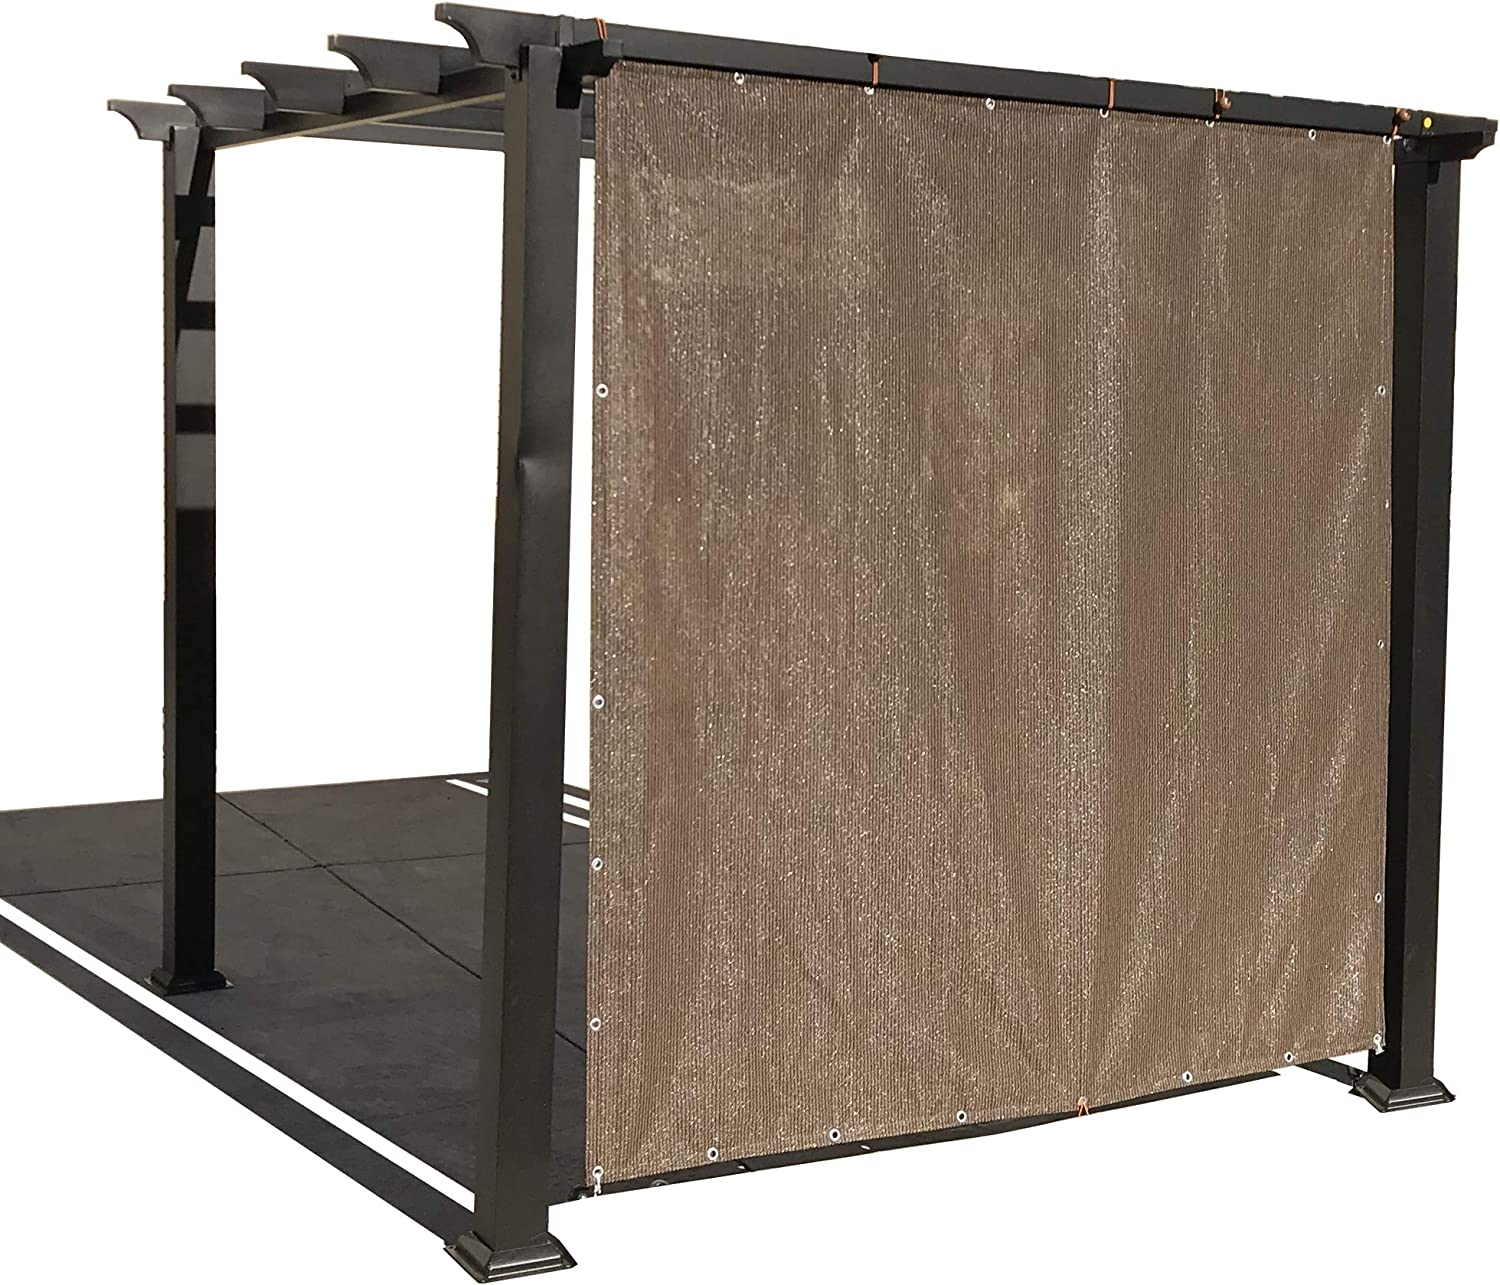 Alion Home Sun Shade Privacy Panel with Grommets and Hems on 4 Sides for Patio, Awning, Window, Pergola or Gazebo - Mocha Brown (10' x 10')